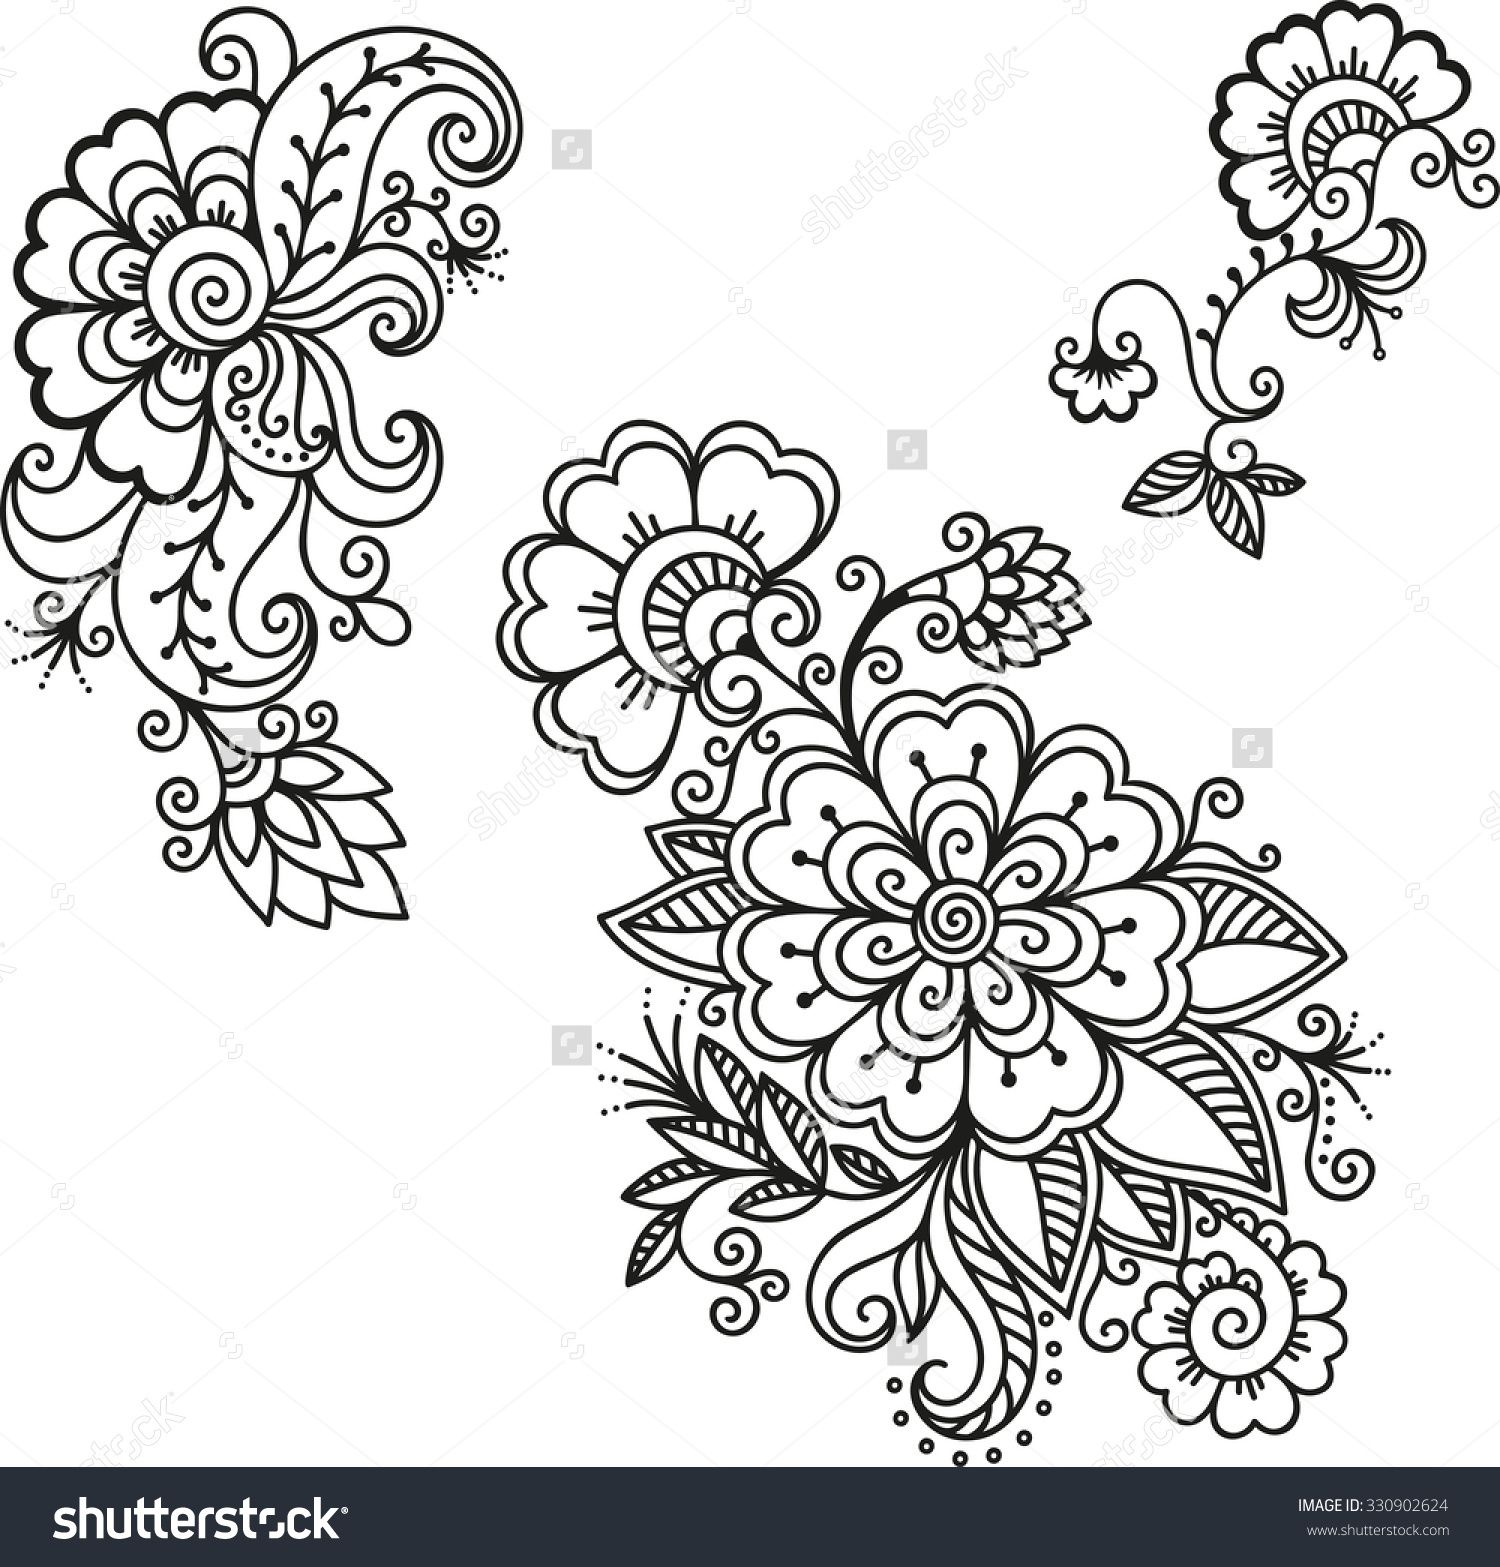 henna tattoo flower template mehndi mehndi pinterest. Black Bedroom Furniture Sets. Home Design Ideas